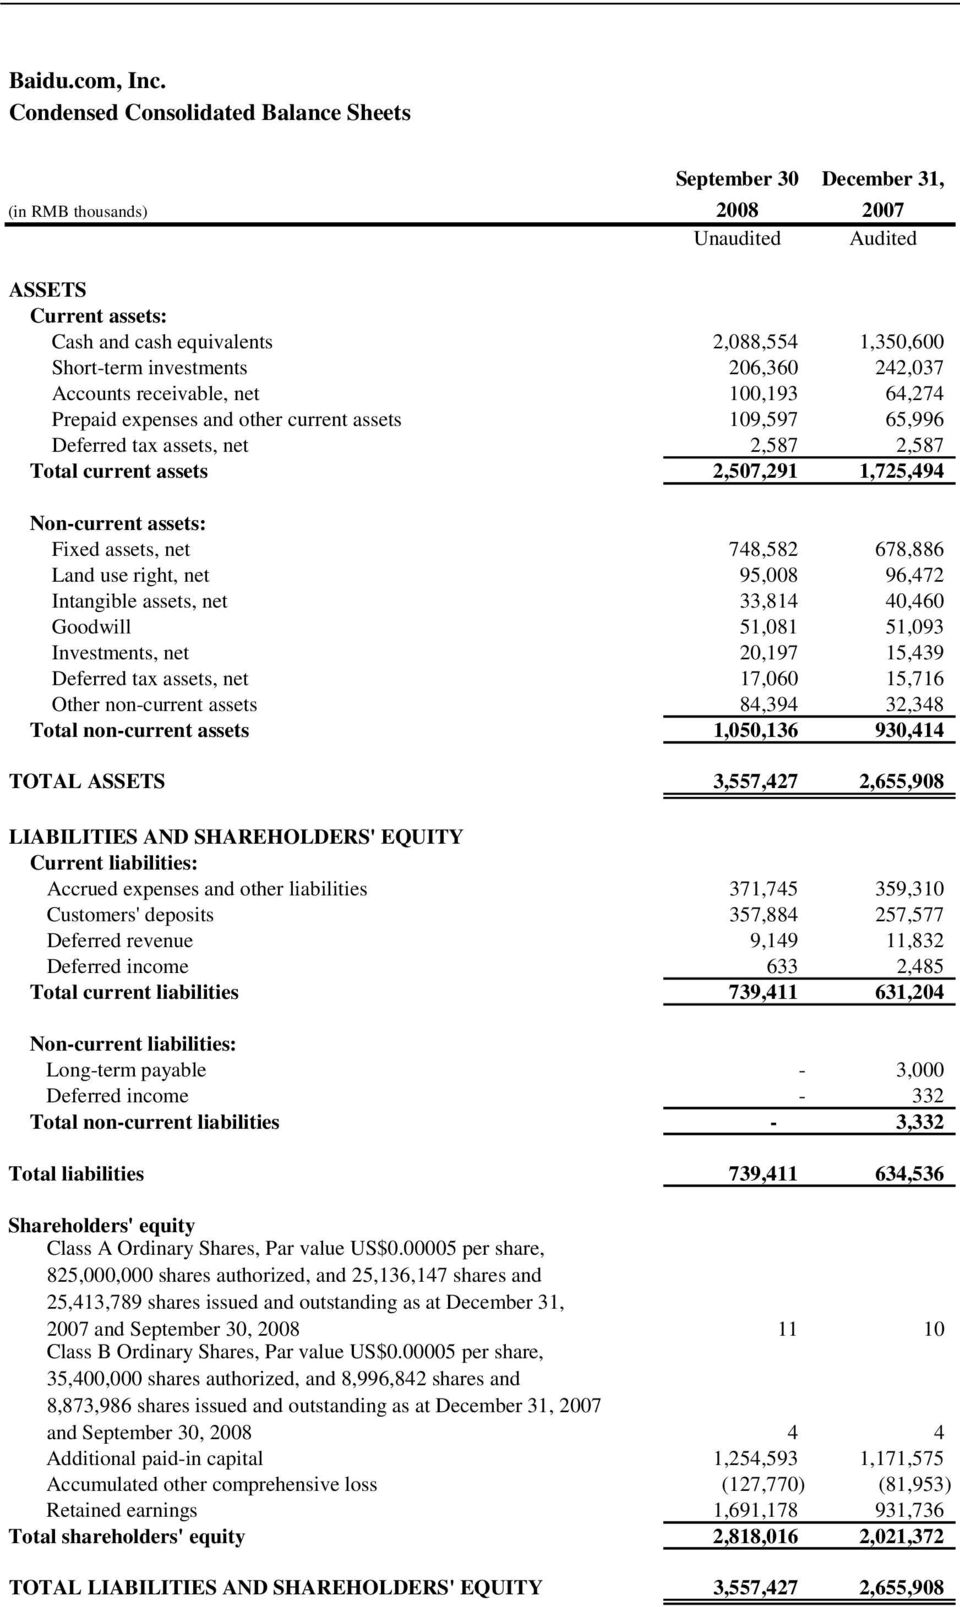 investments 206,360 242,037 Accounts receivable, net 100,193 64,274 Prepaid expenses and other current assets 109,597 65,996 Deferred tax assets, net 2,587 2,587 Total current assets 2,507,291